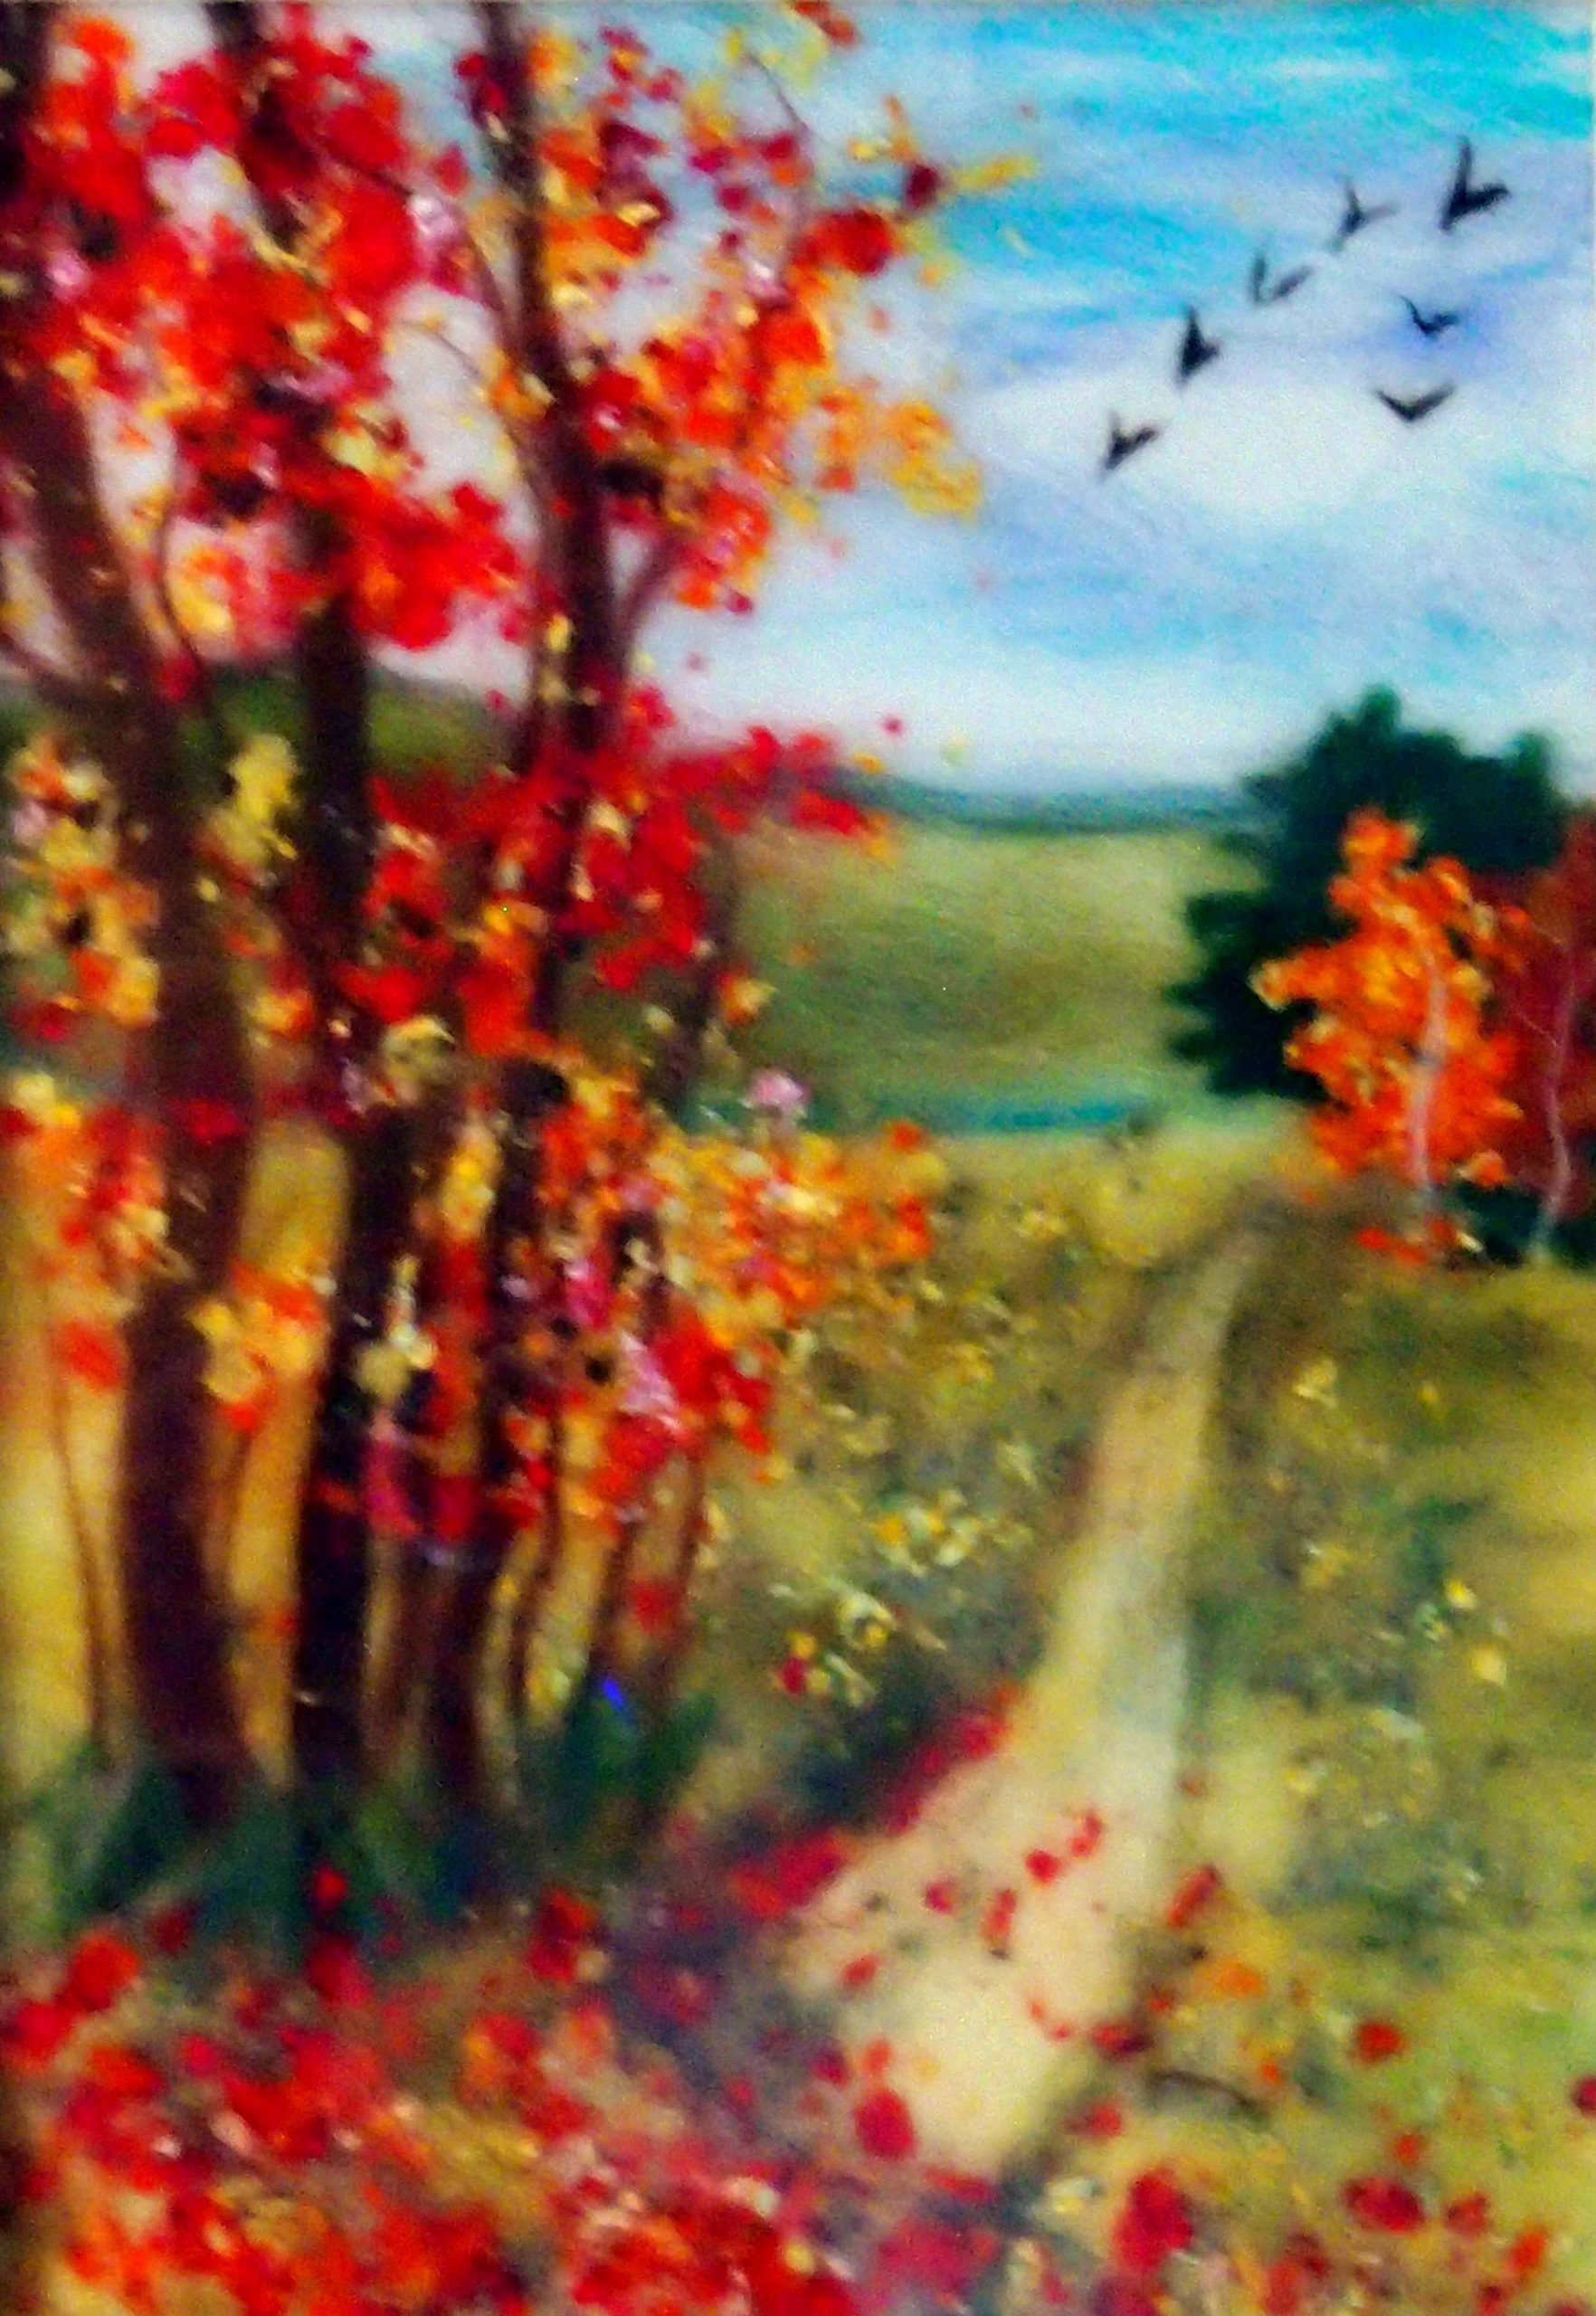 Art Studio in Worcestershire will resume its face-to-face wool painting Art courses in September.